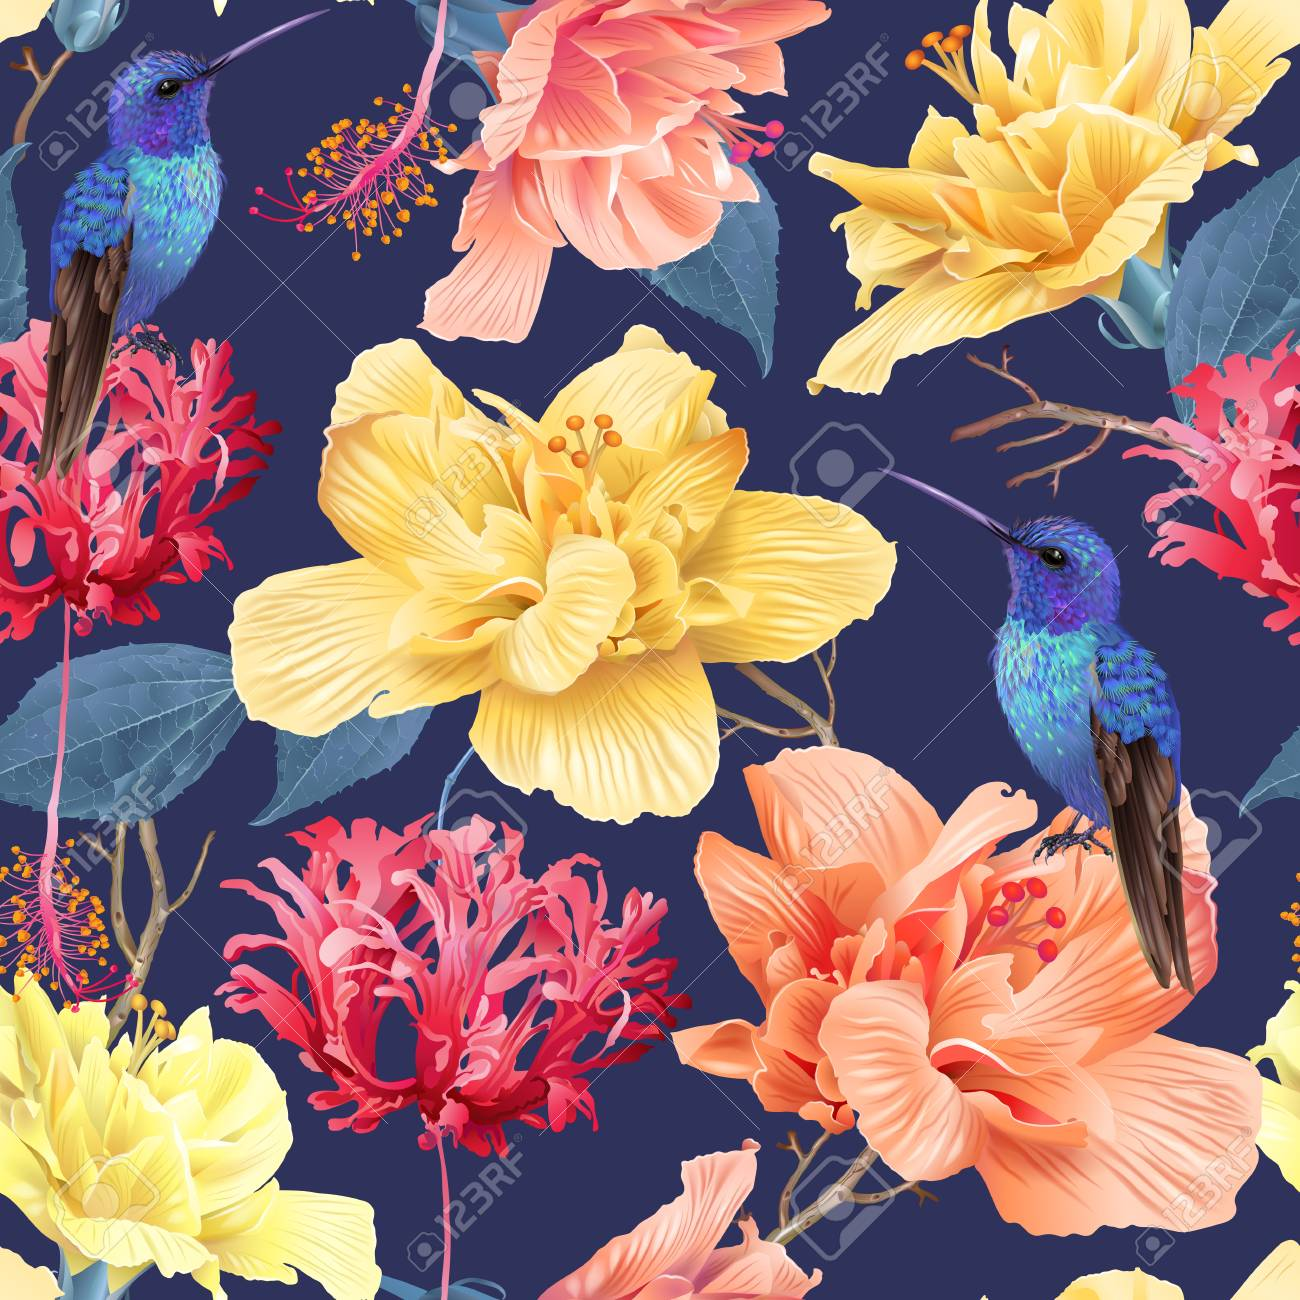 Tropic floral pattern background - 104024302